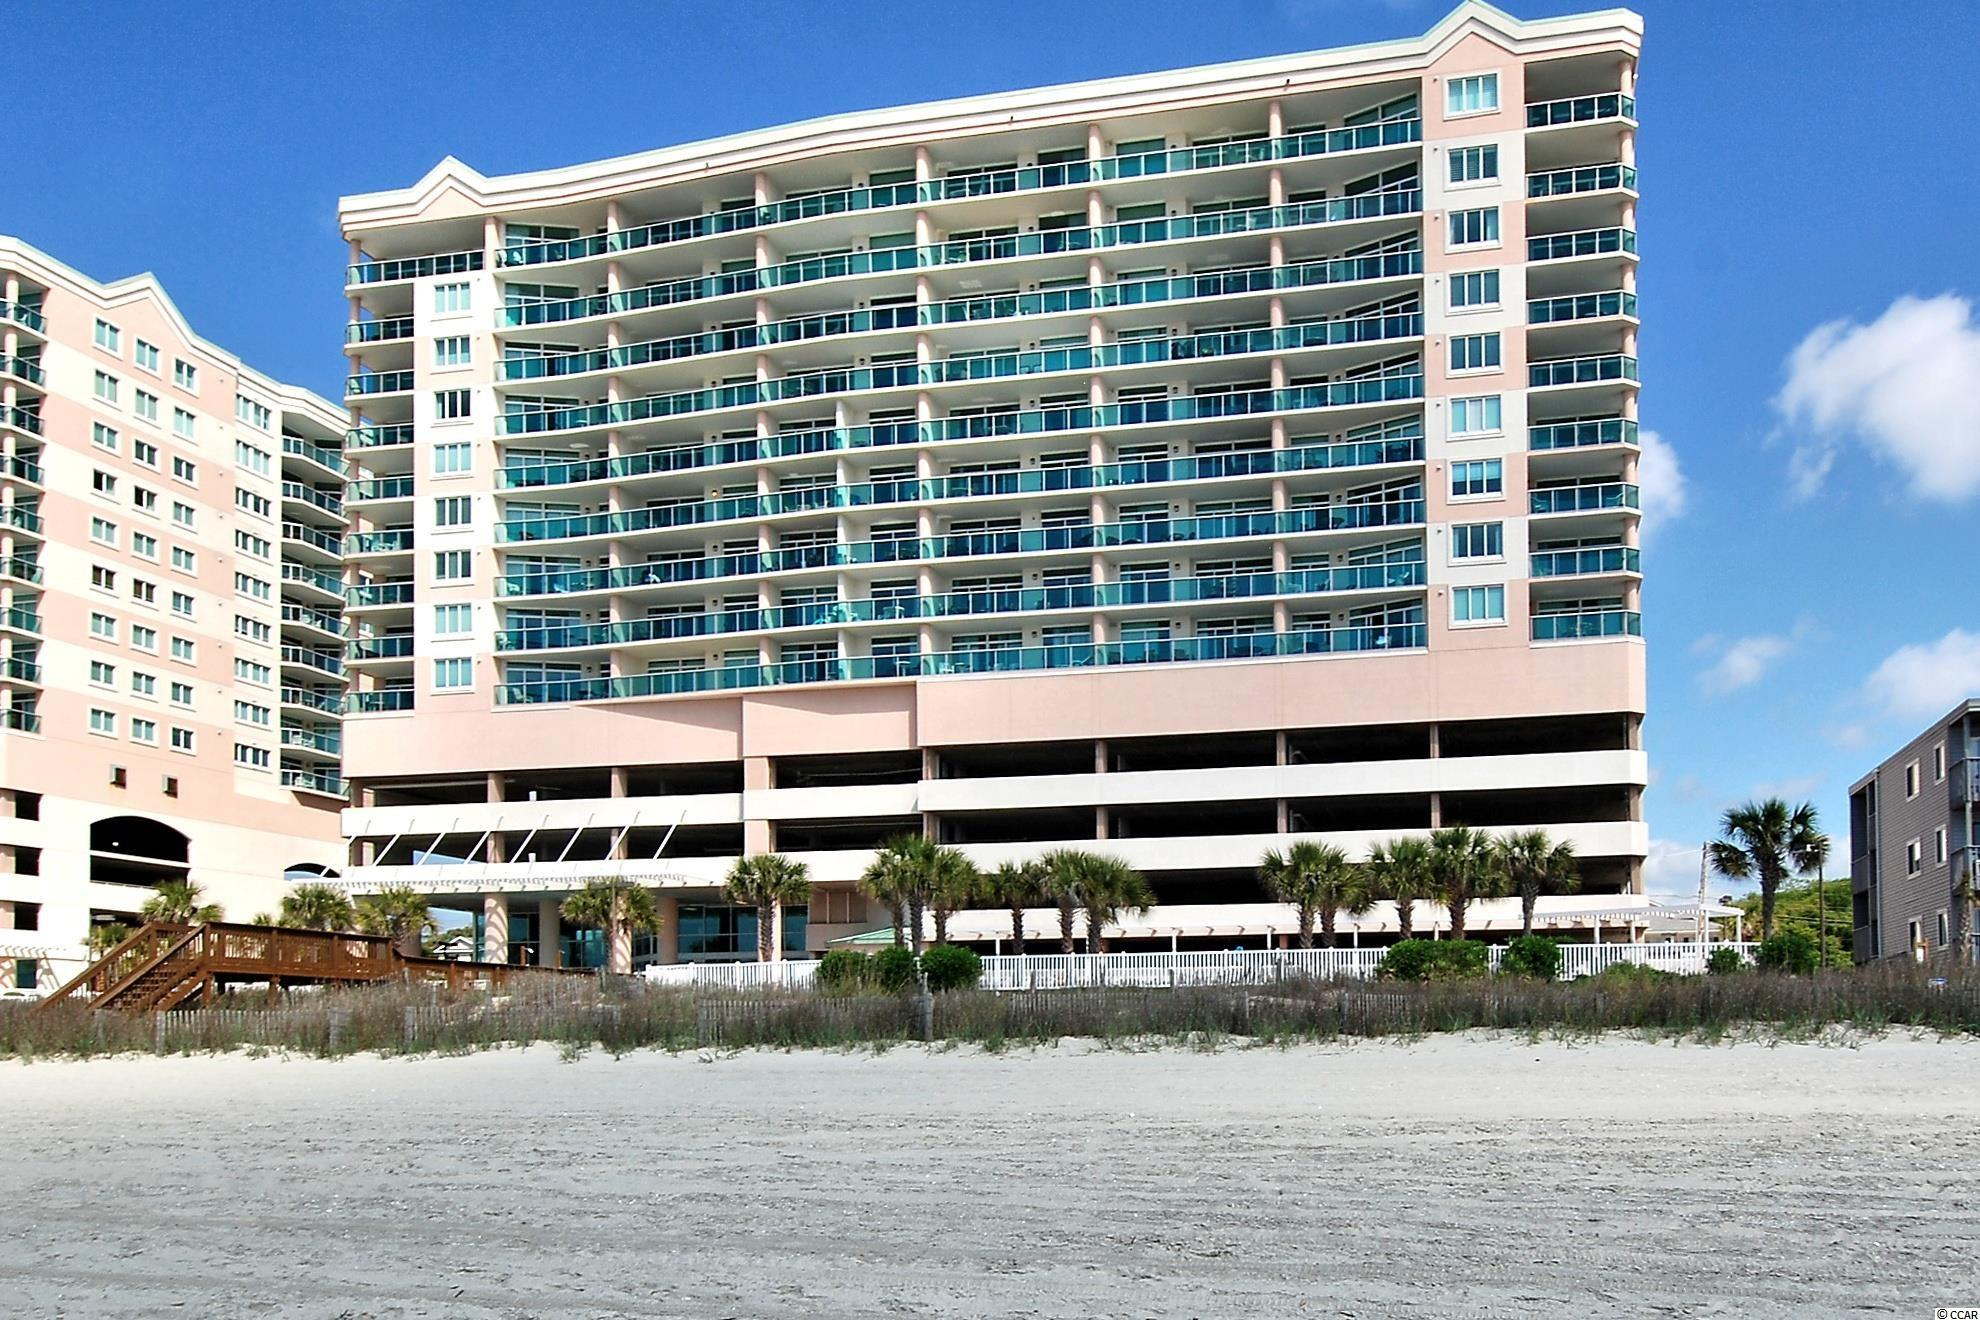 Spectacular direct Oceanfront two bedroom, two bath condo with an expansive ocean balcony to beautiful ocean sites and sounds. It has been upgraded and very well taken care of and is not on a rental program. Crescent Keyes is a desirable building with outstanding amenities: indoor heated pool, oceanfront outdoor pool, lazy river, kiddie pool, hot tub and a large exercise room that overlooks the beautiful Atlantic Ocean. This condo is beautifully decorated and freshly painted. New airconditioning/heat unit 2021. New furniture and stainless appliances and a new washer and dryer. It has wireless internet, your own seperate storage closet and onsite parking under the building. This condo is a great primary, second home, rental investment property! Hurry.